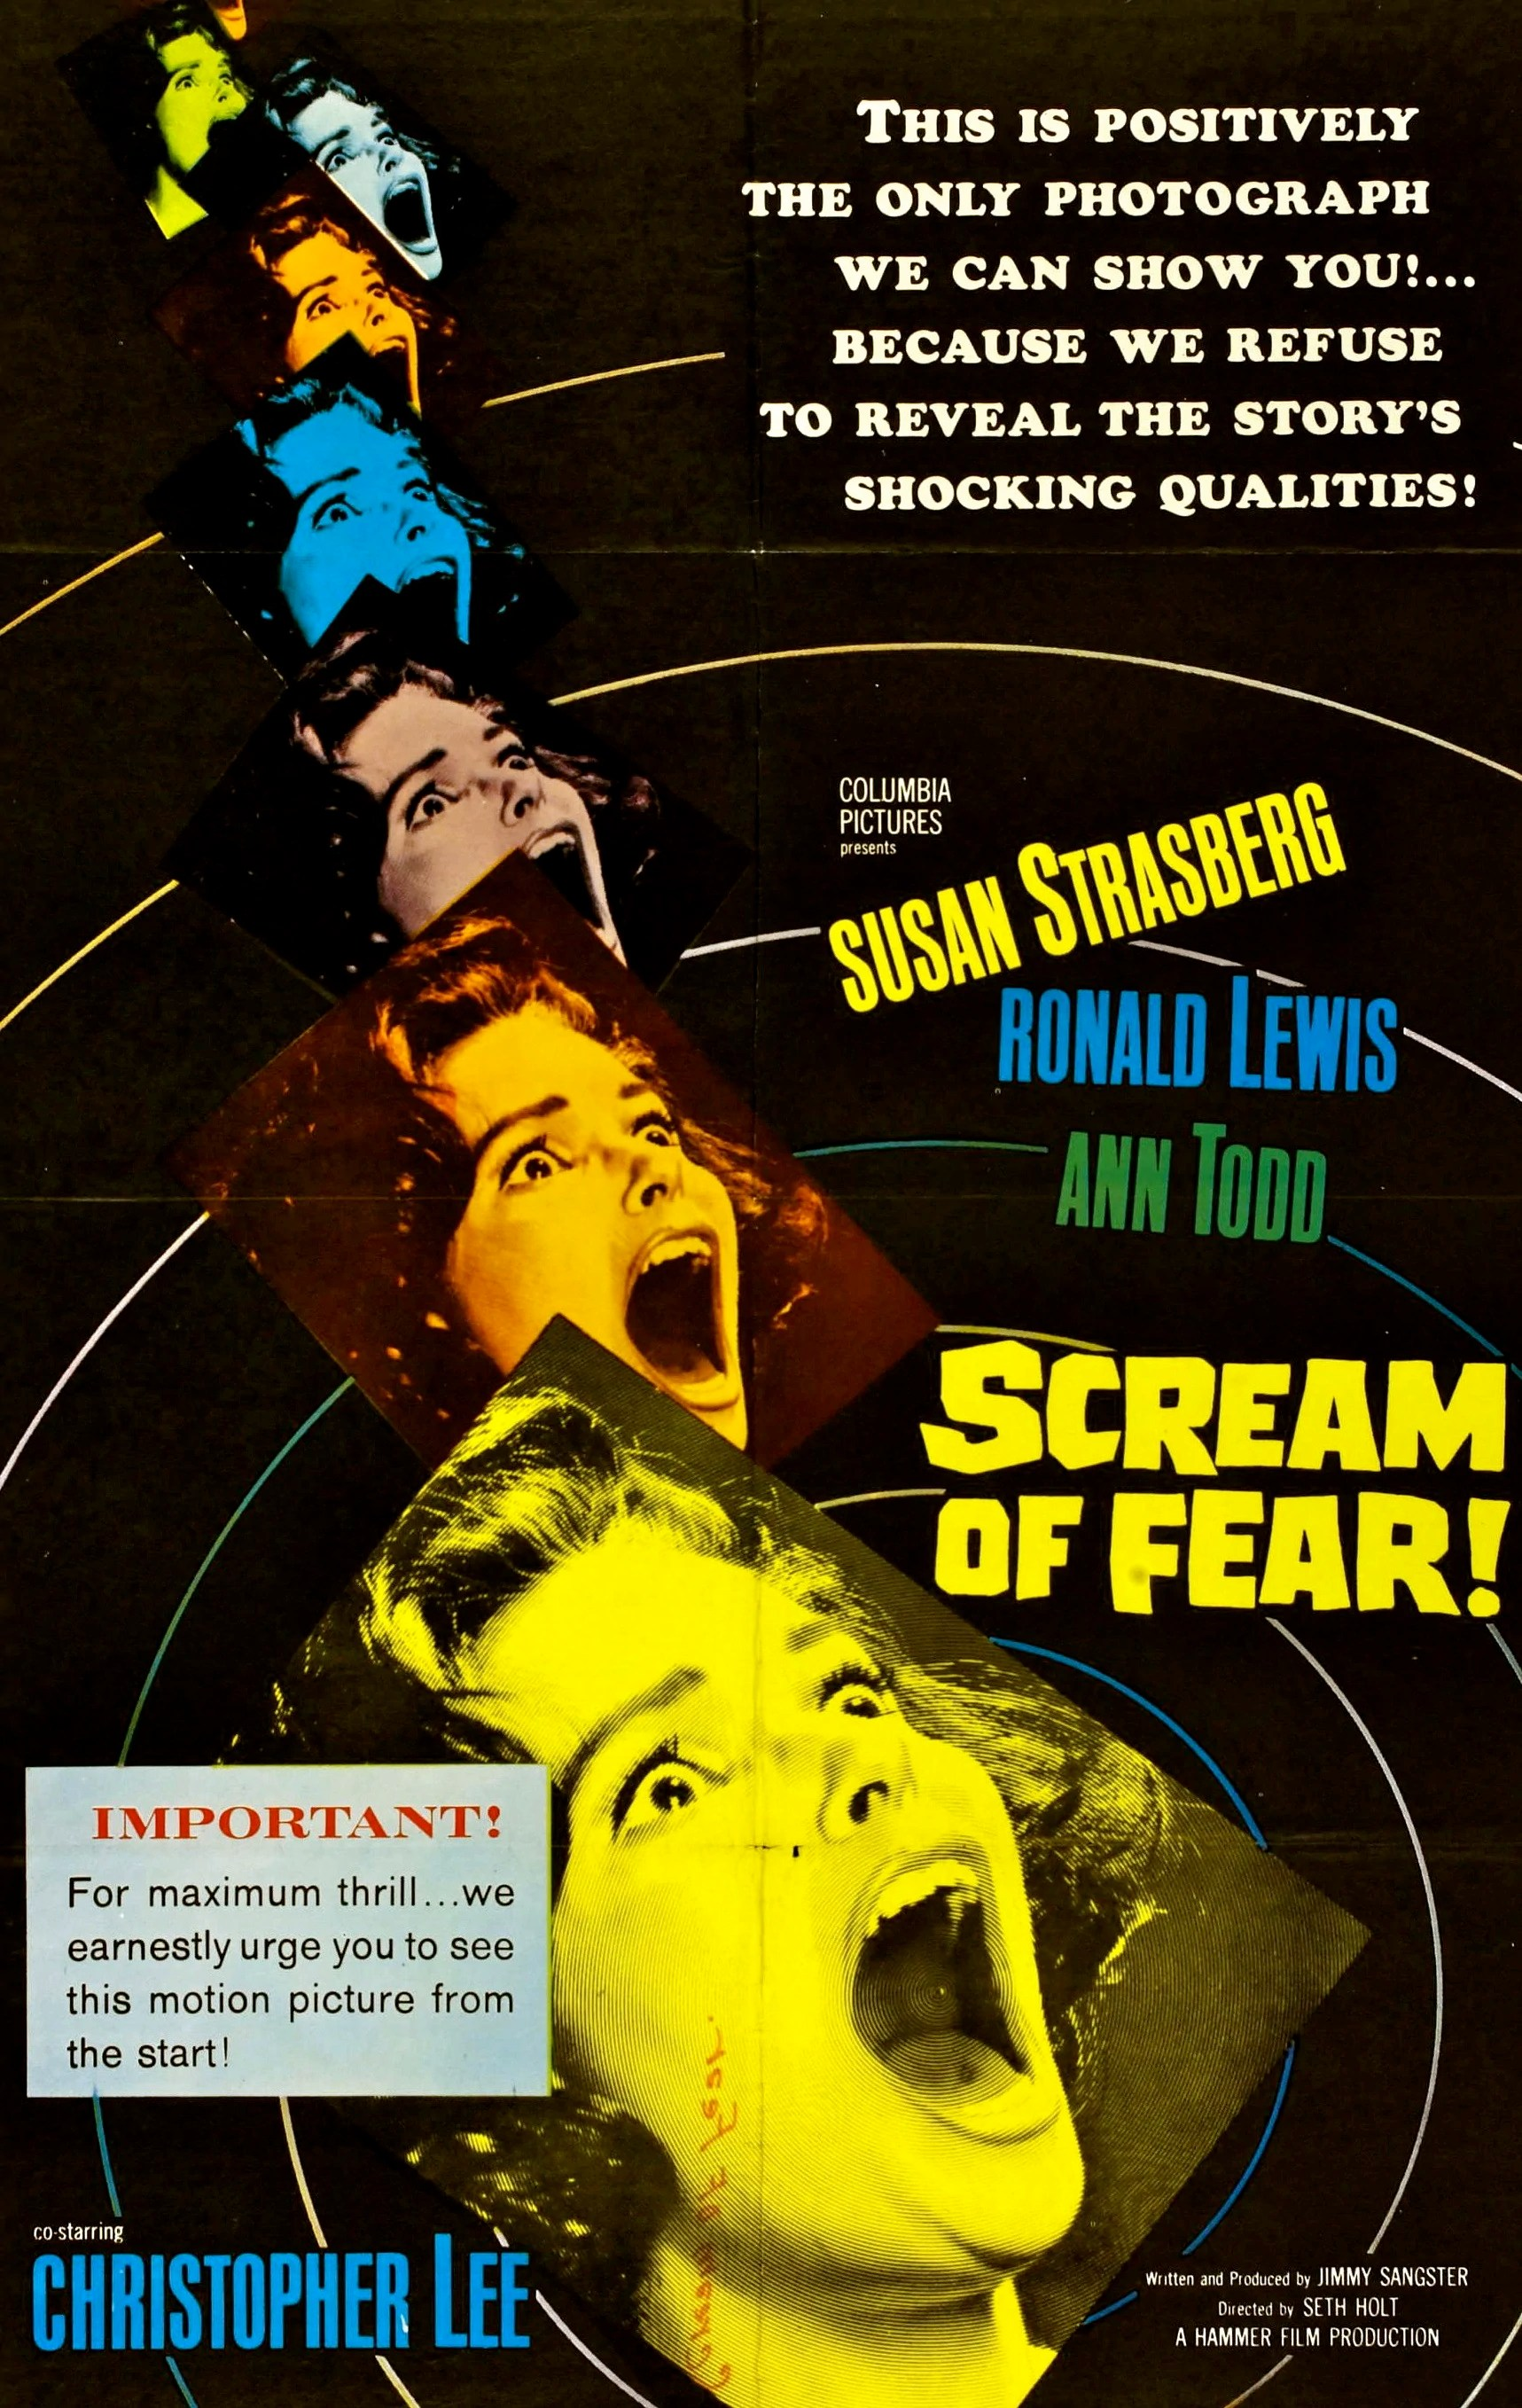 Pics of Fear Scream Movie Posters